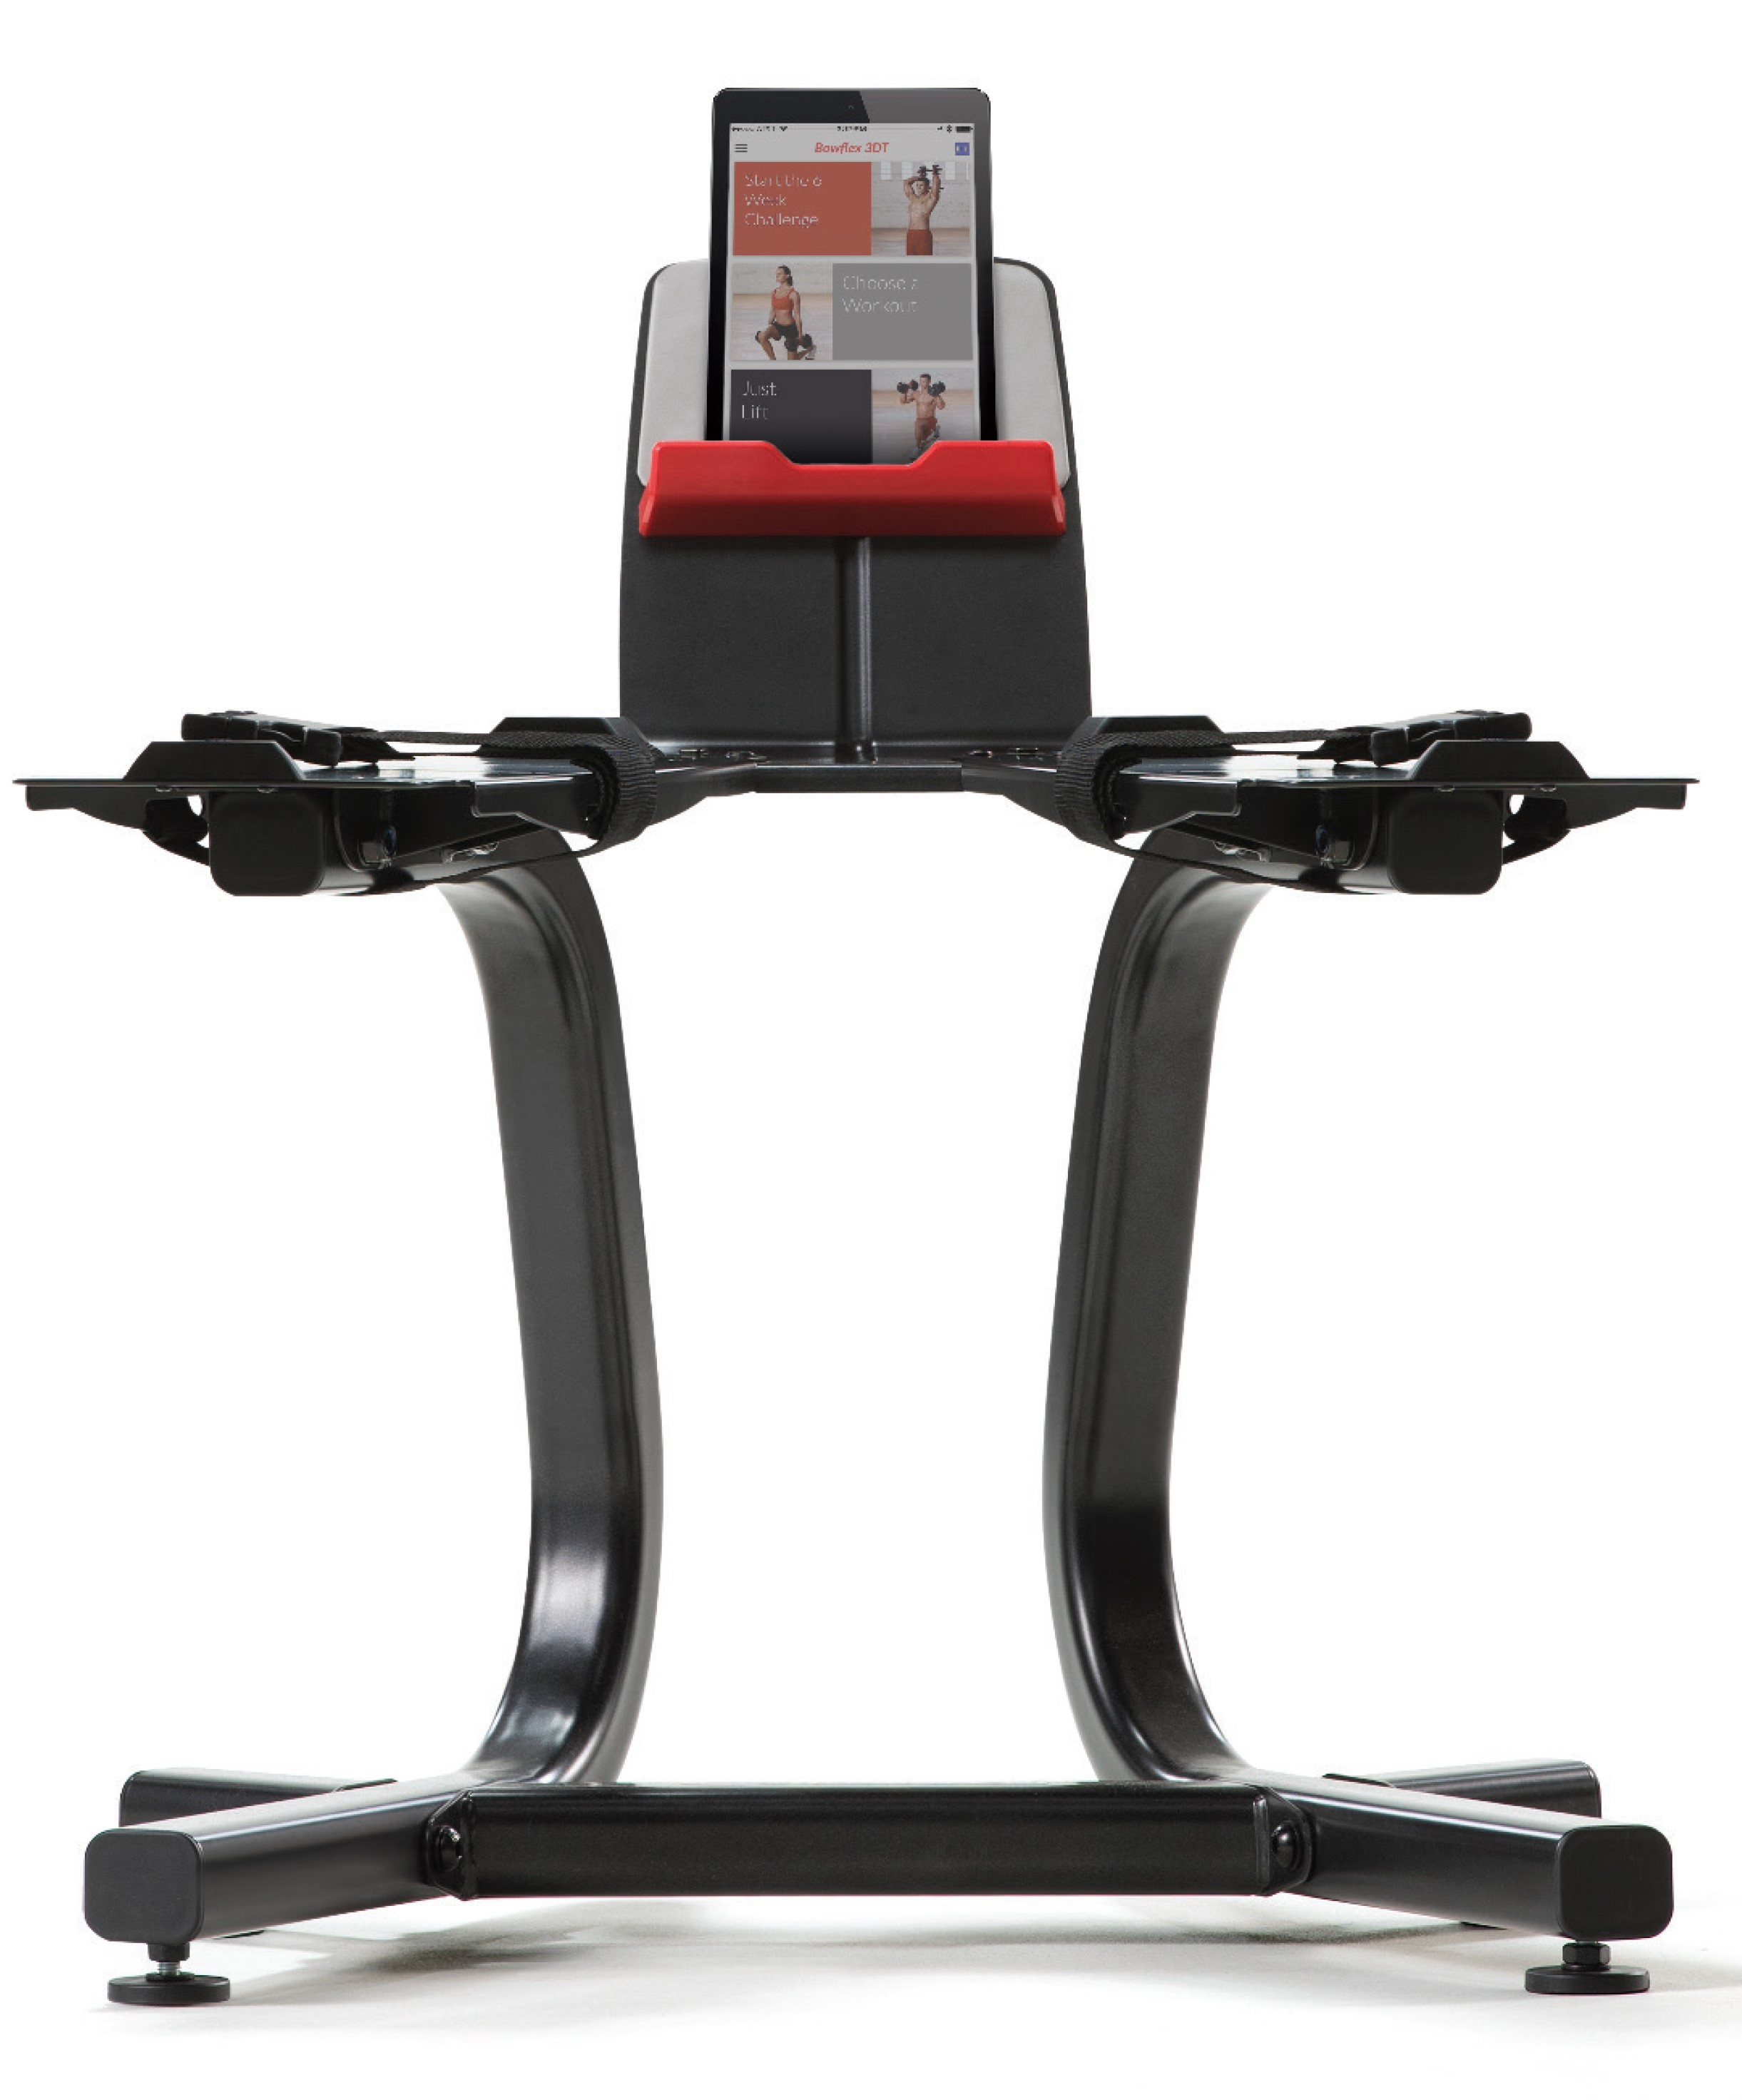 Bowflex SelectTech Stand with Large Media Rack for Free SelectTech App by Nautilus